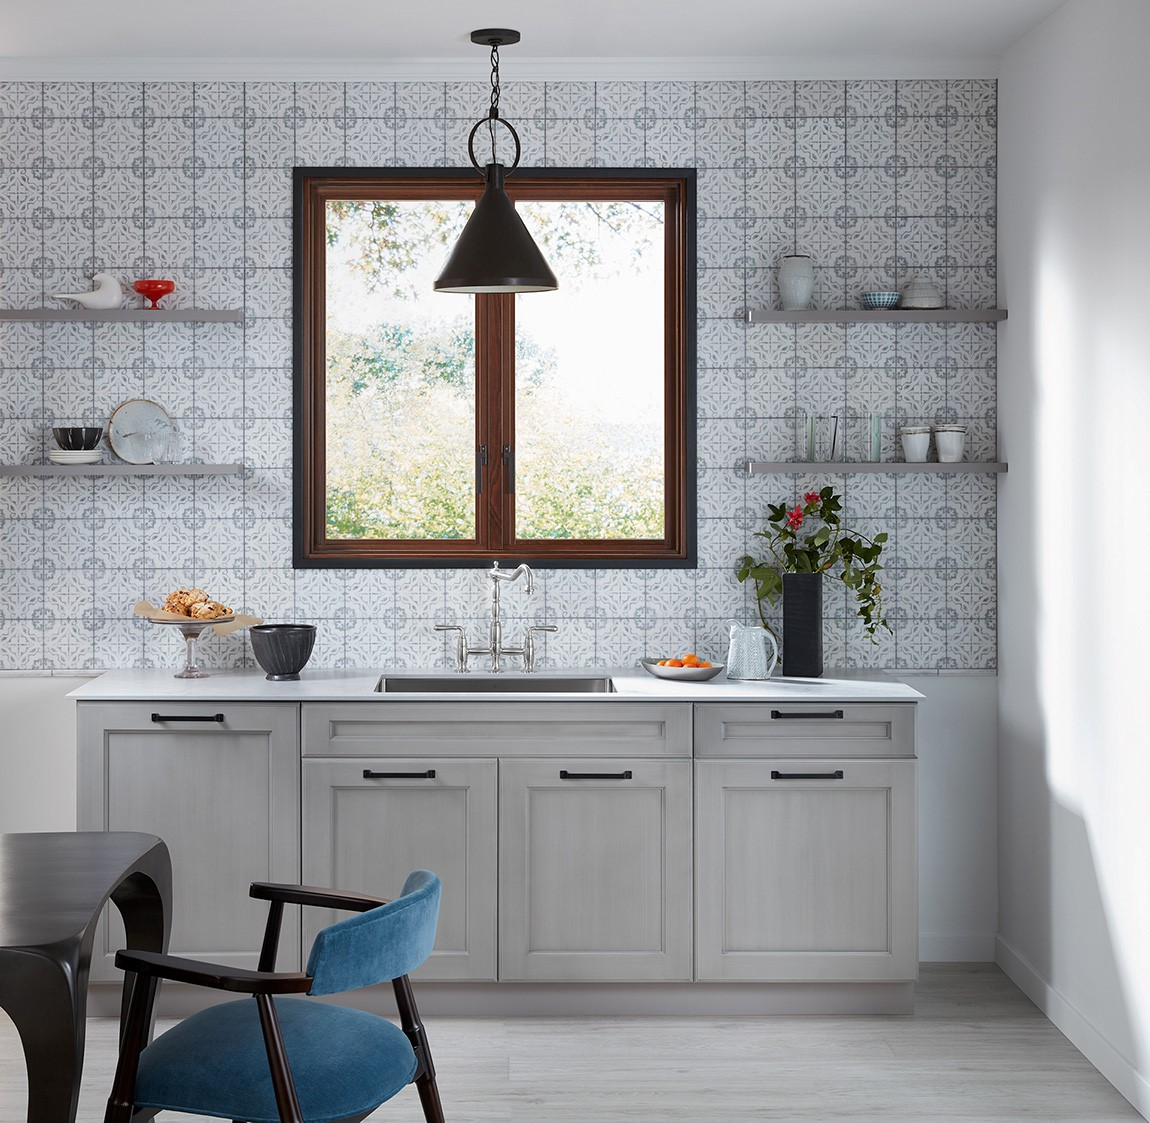 kitchen sink and counter with patterned back splash